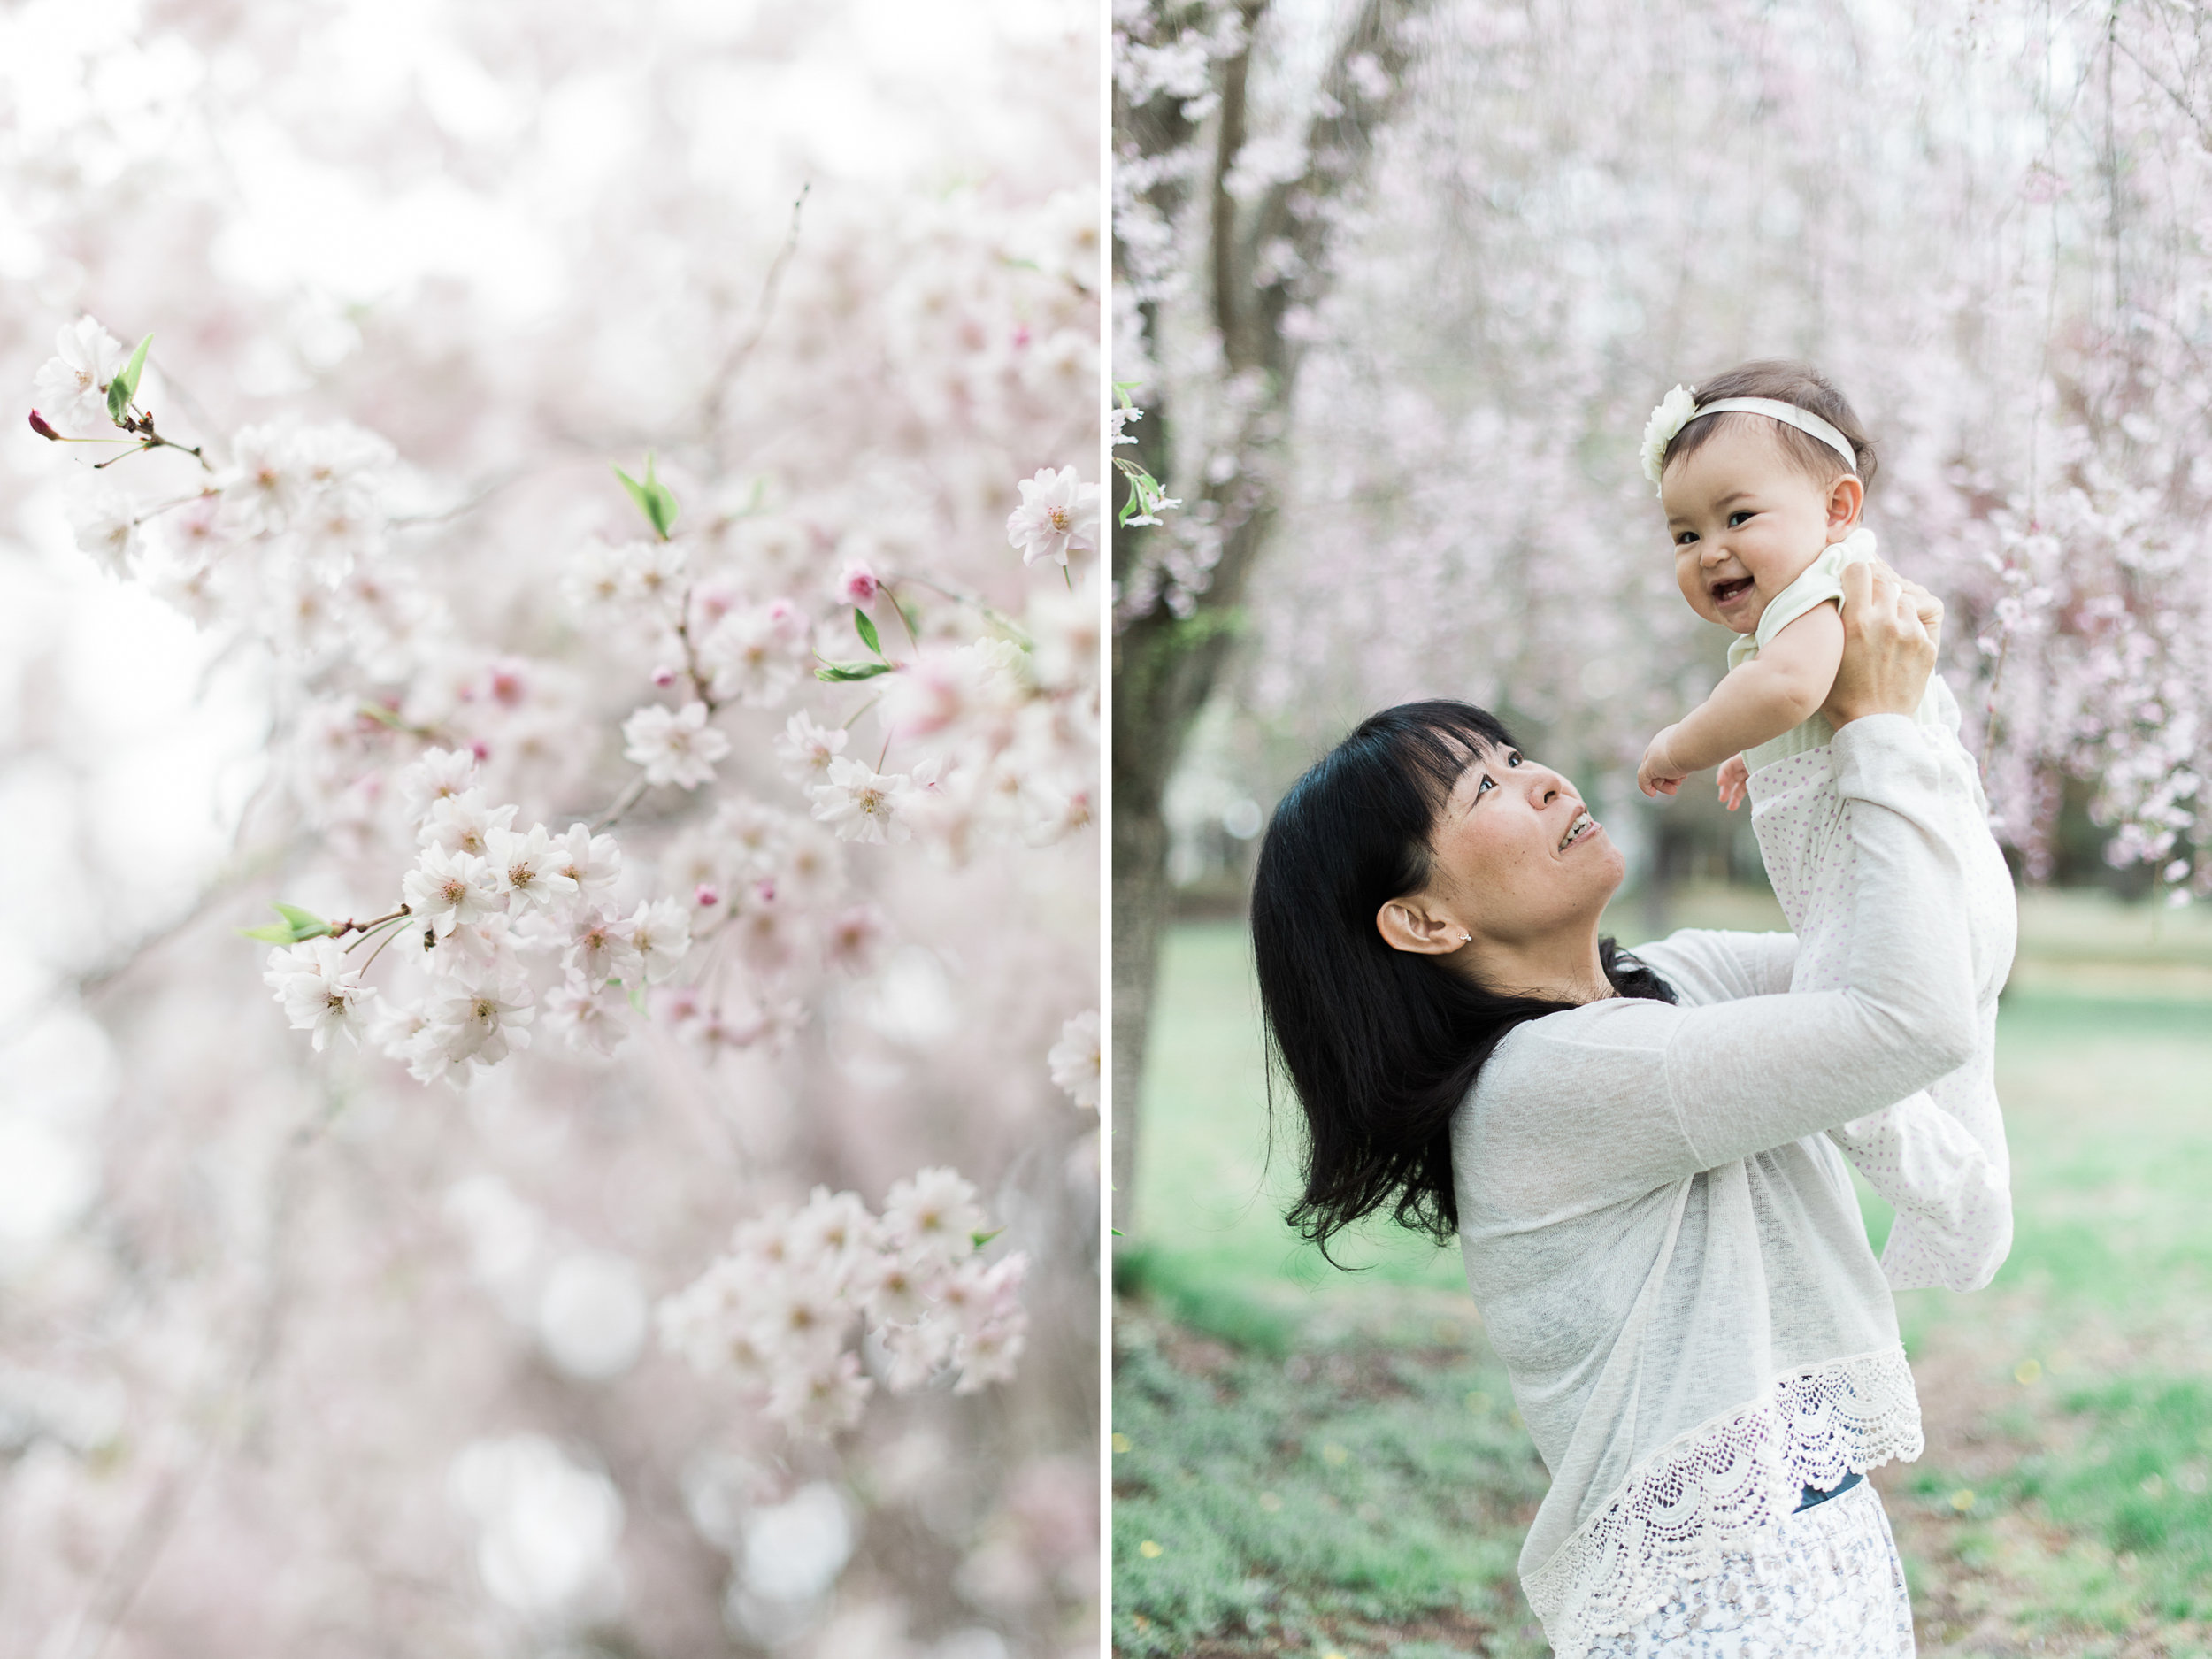 Baby Photography in Deerfield MA